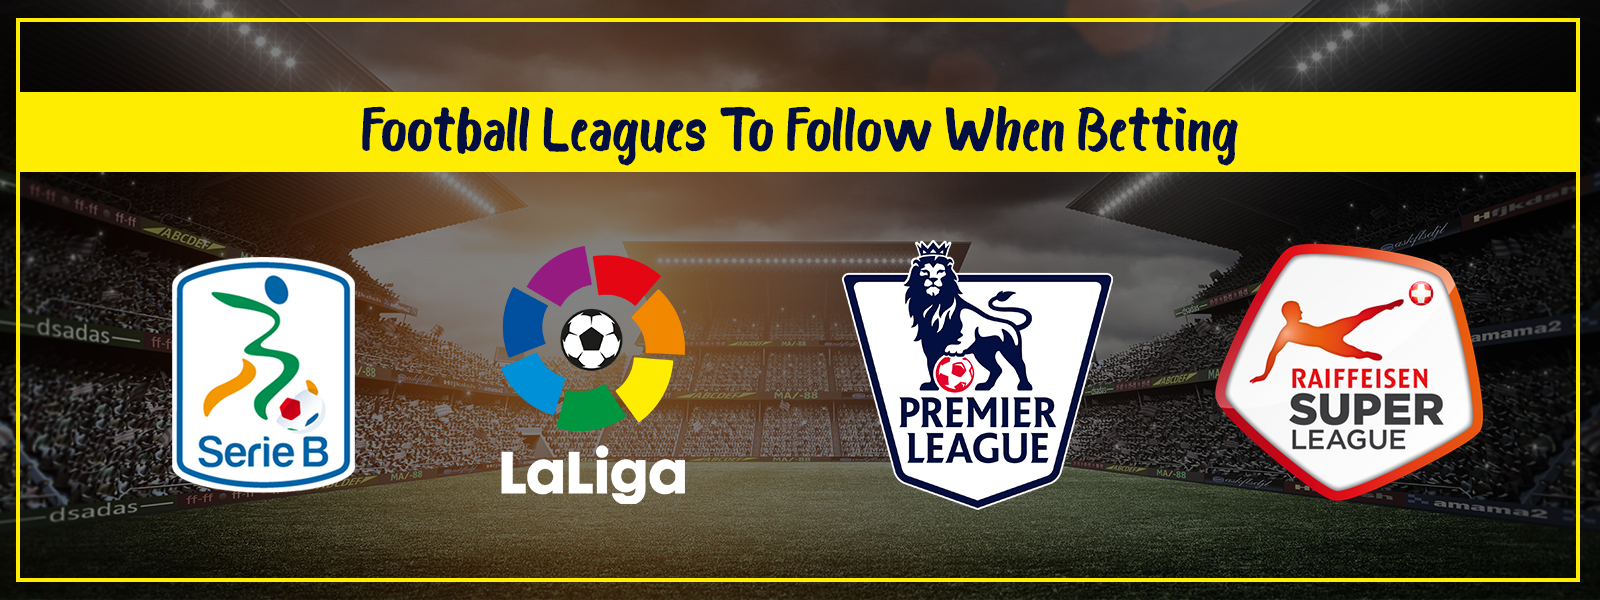 Football Leagues To Follow When Betting